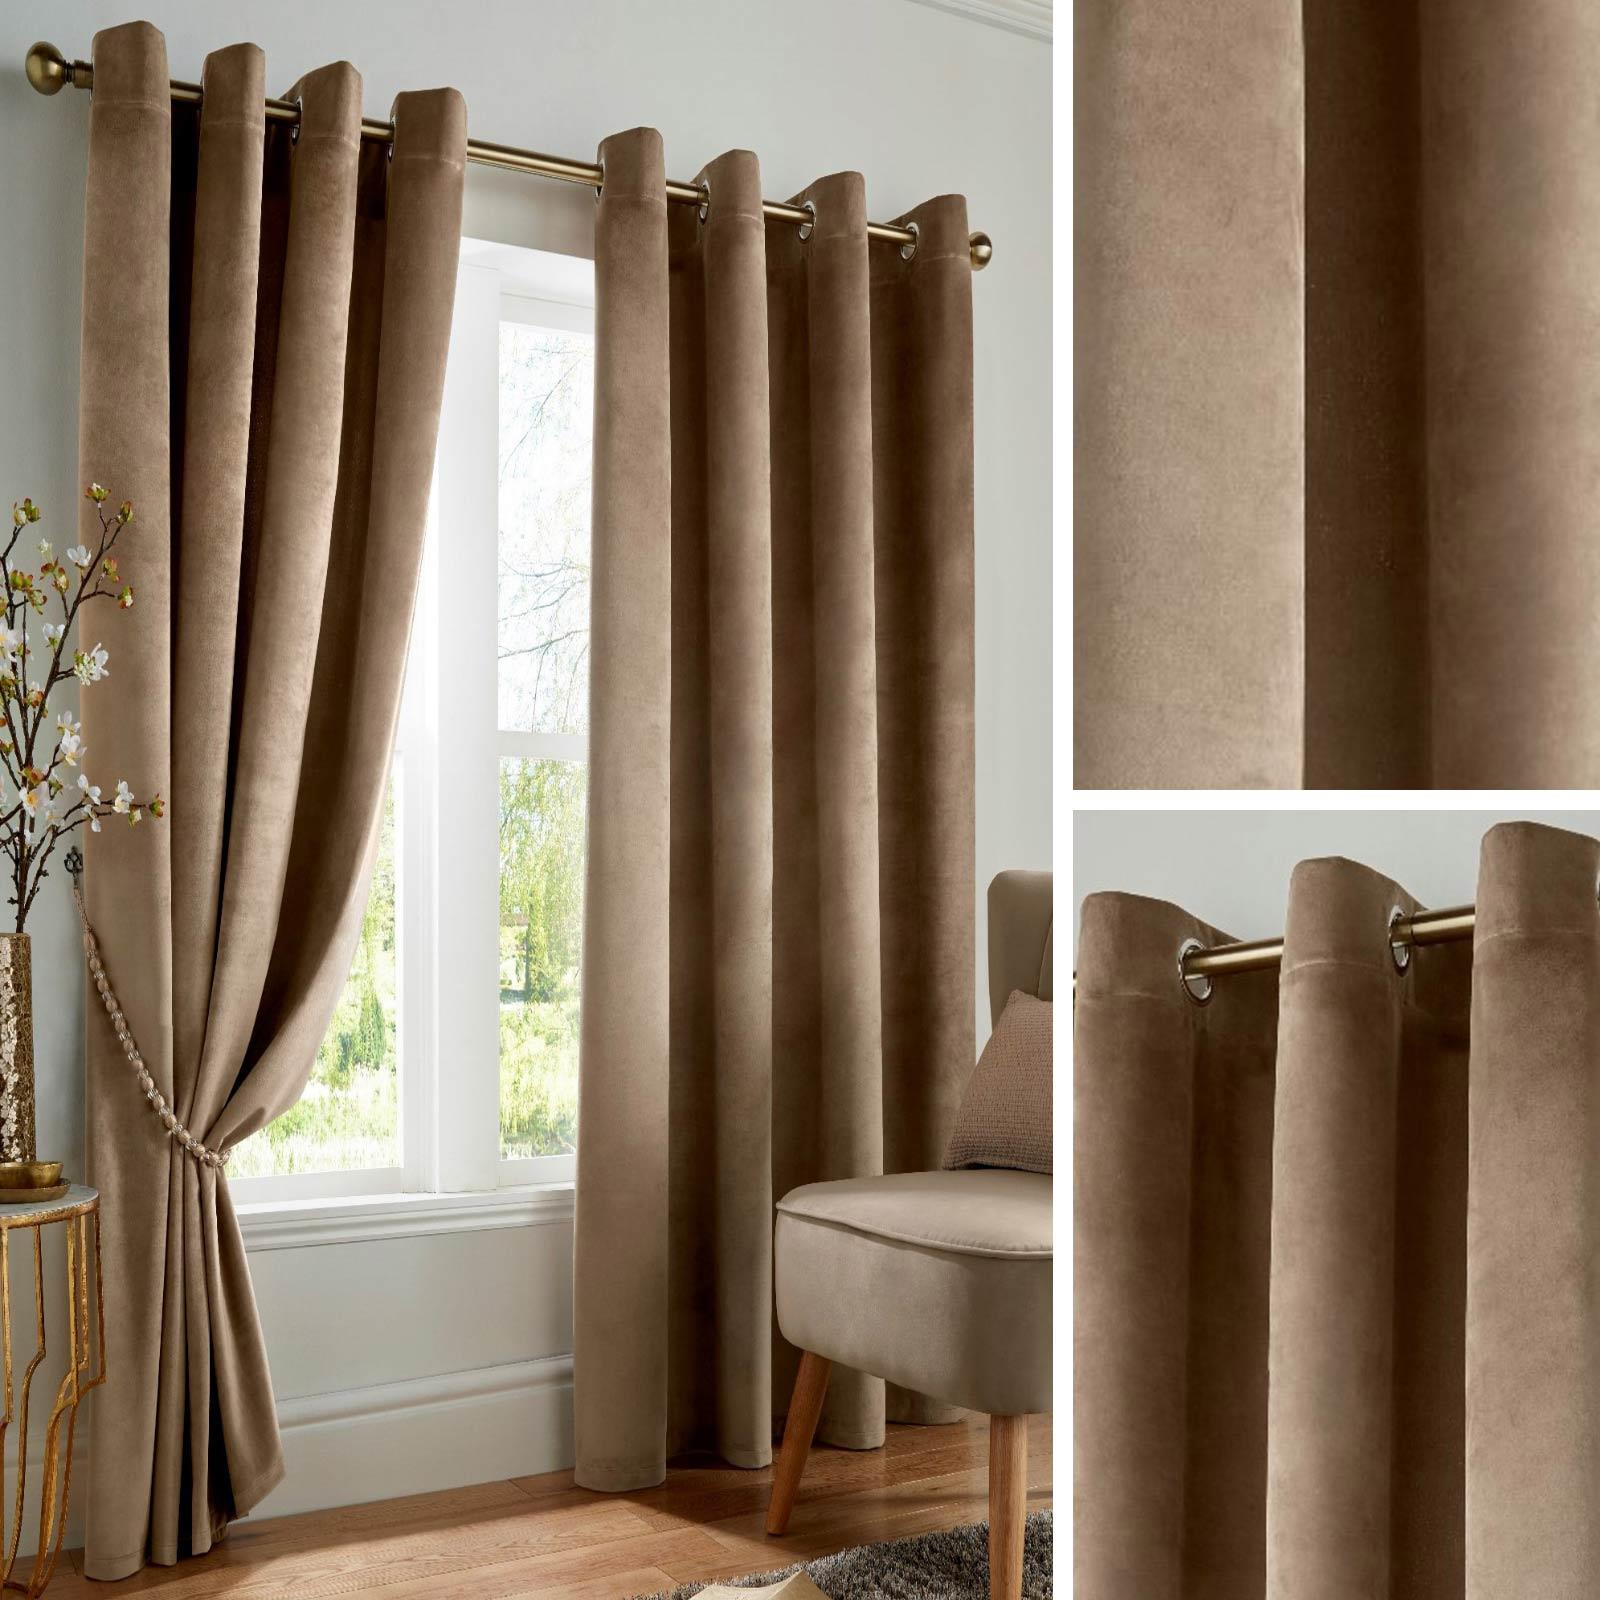 Details About Beige Blackout Curtains Velvet Thermal Eyelet Ready Made Ring Top Curtain Pairs Within Warm Black Velvet Single Blackout Curtain Panels (View 21 of 30)